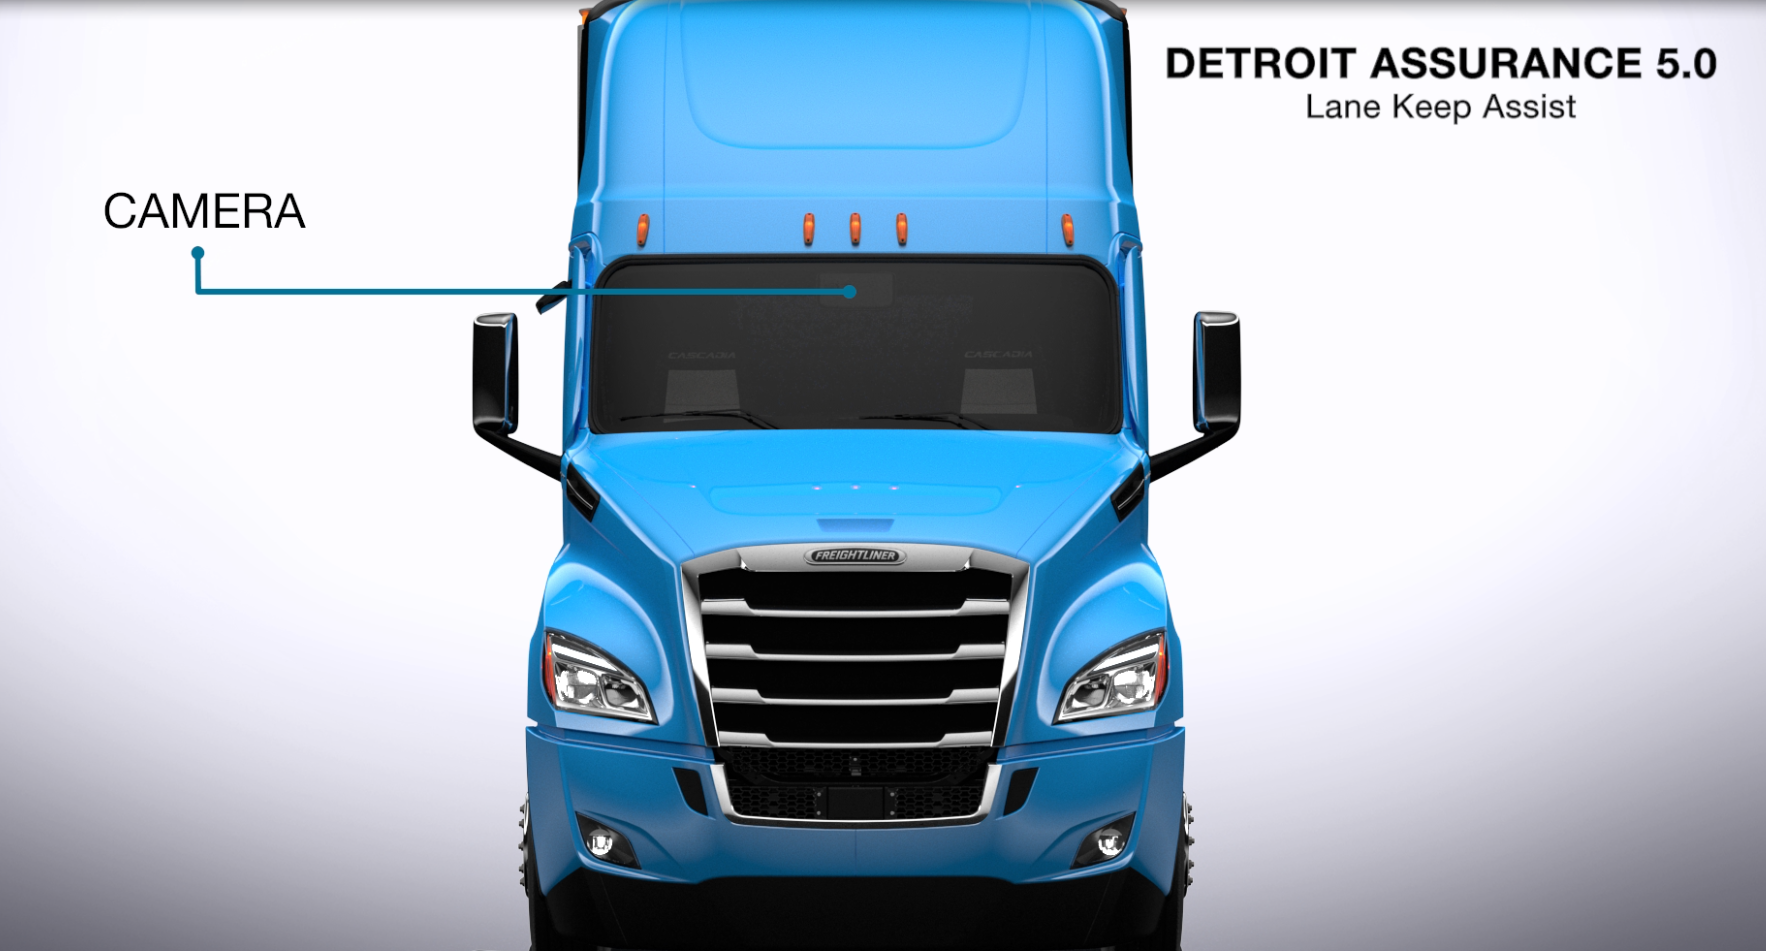 Detroit Assurance 5.0 Lane Keep Assist